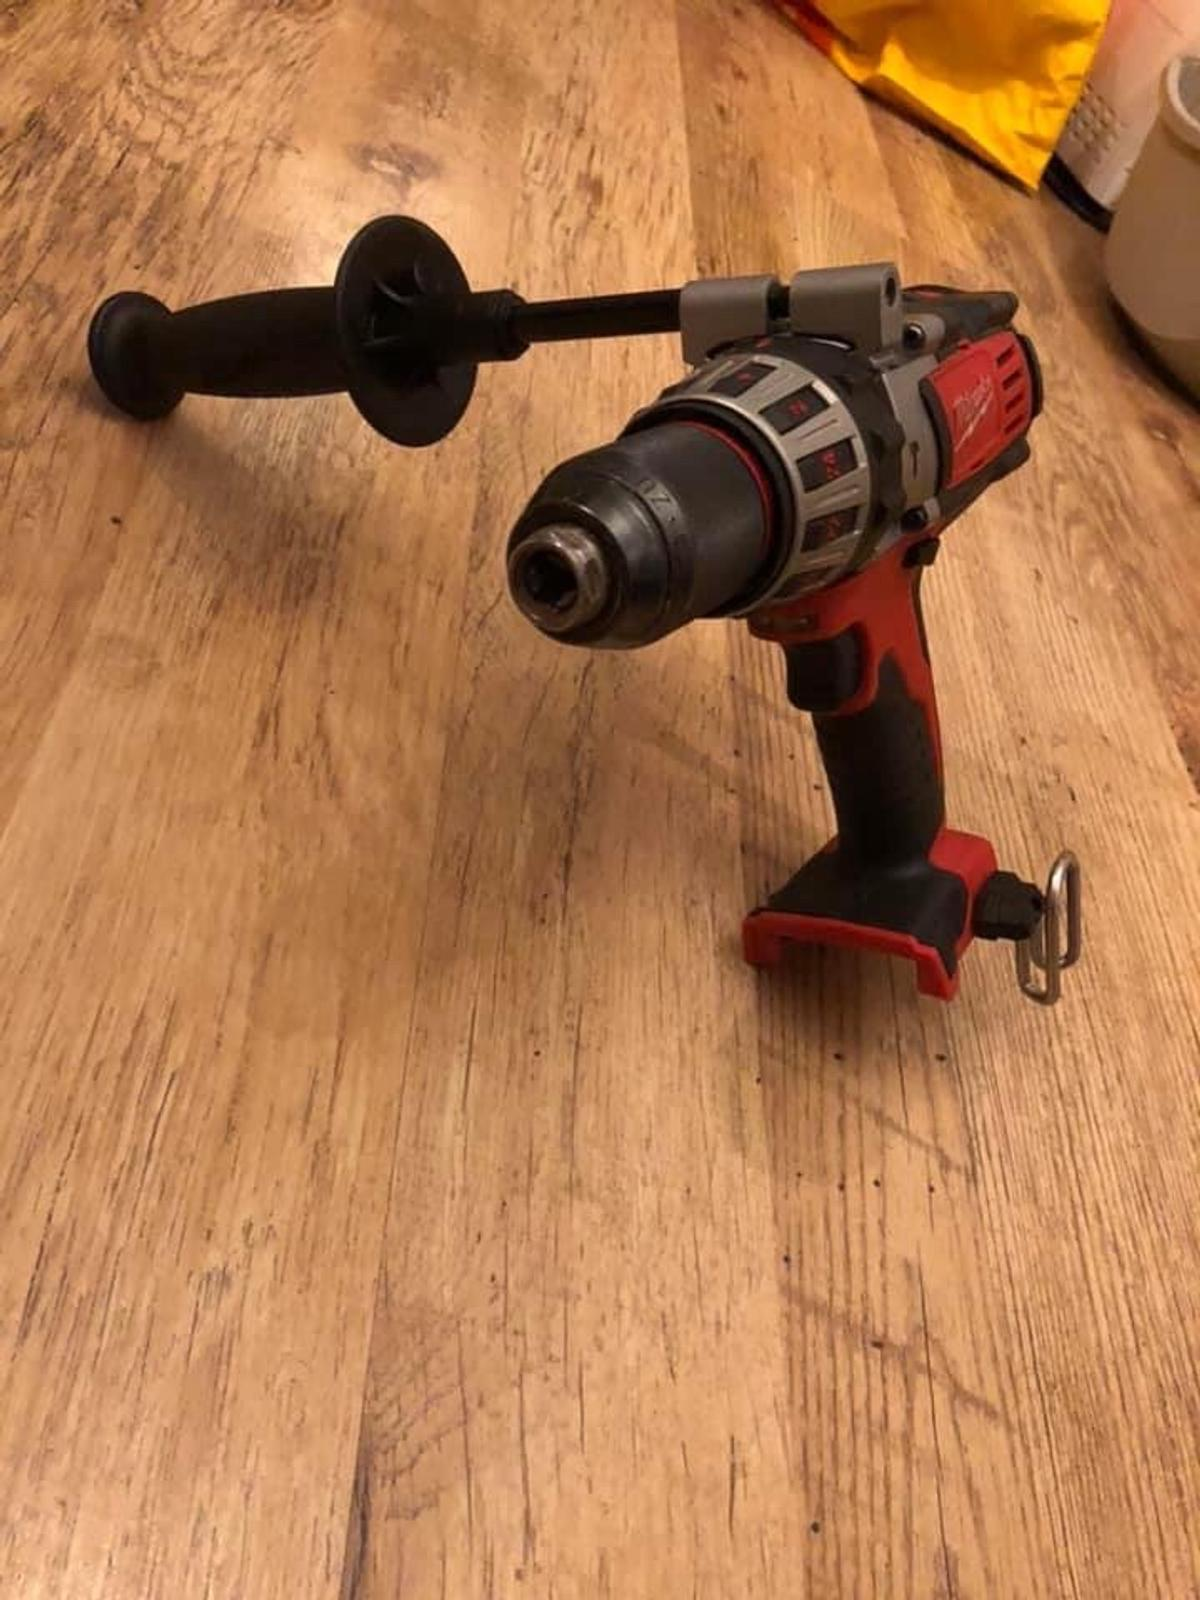 Milwaukee drill model no: HD18PD. No longer needed. Barely used. No battery £60 or with battery for £80 OVNO. Can be seen working, collection only, West End, Woking